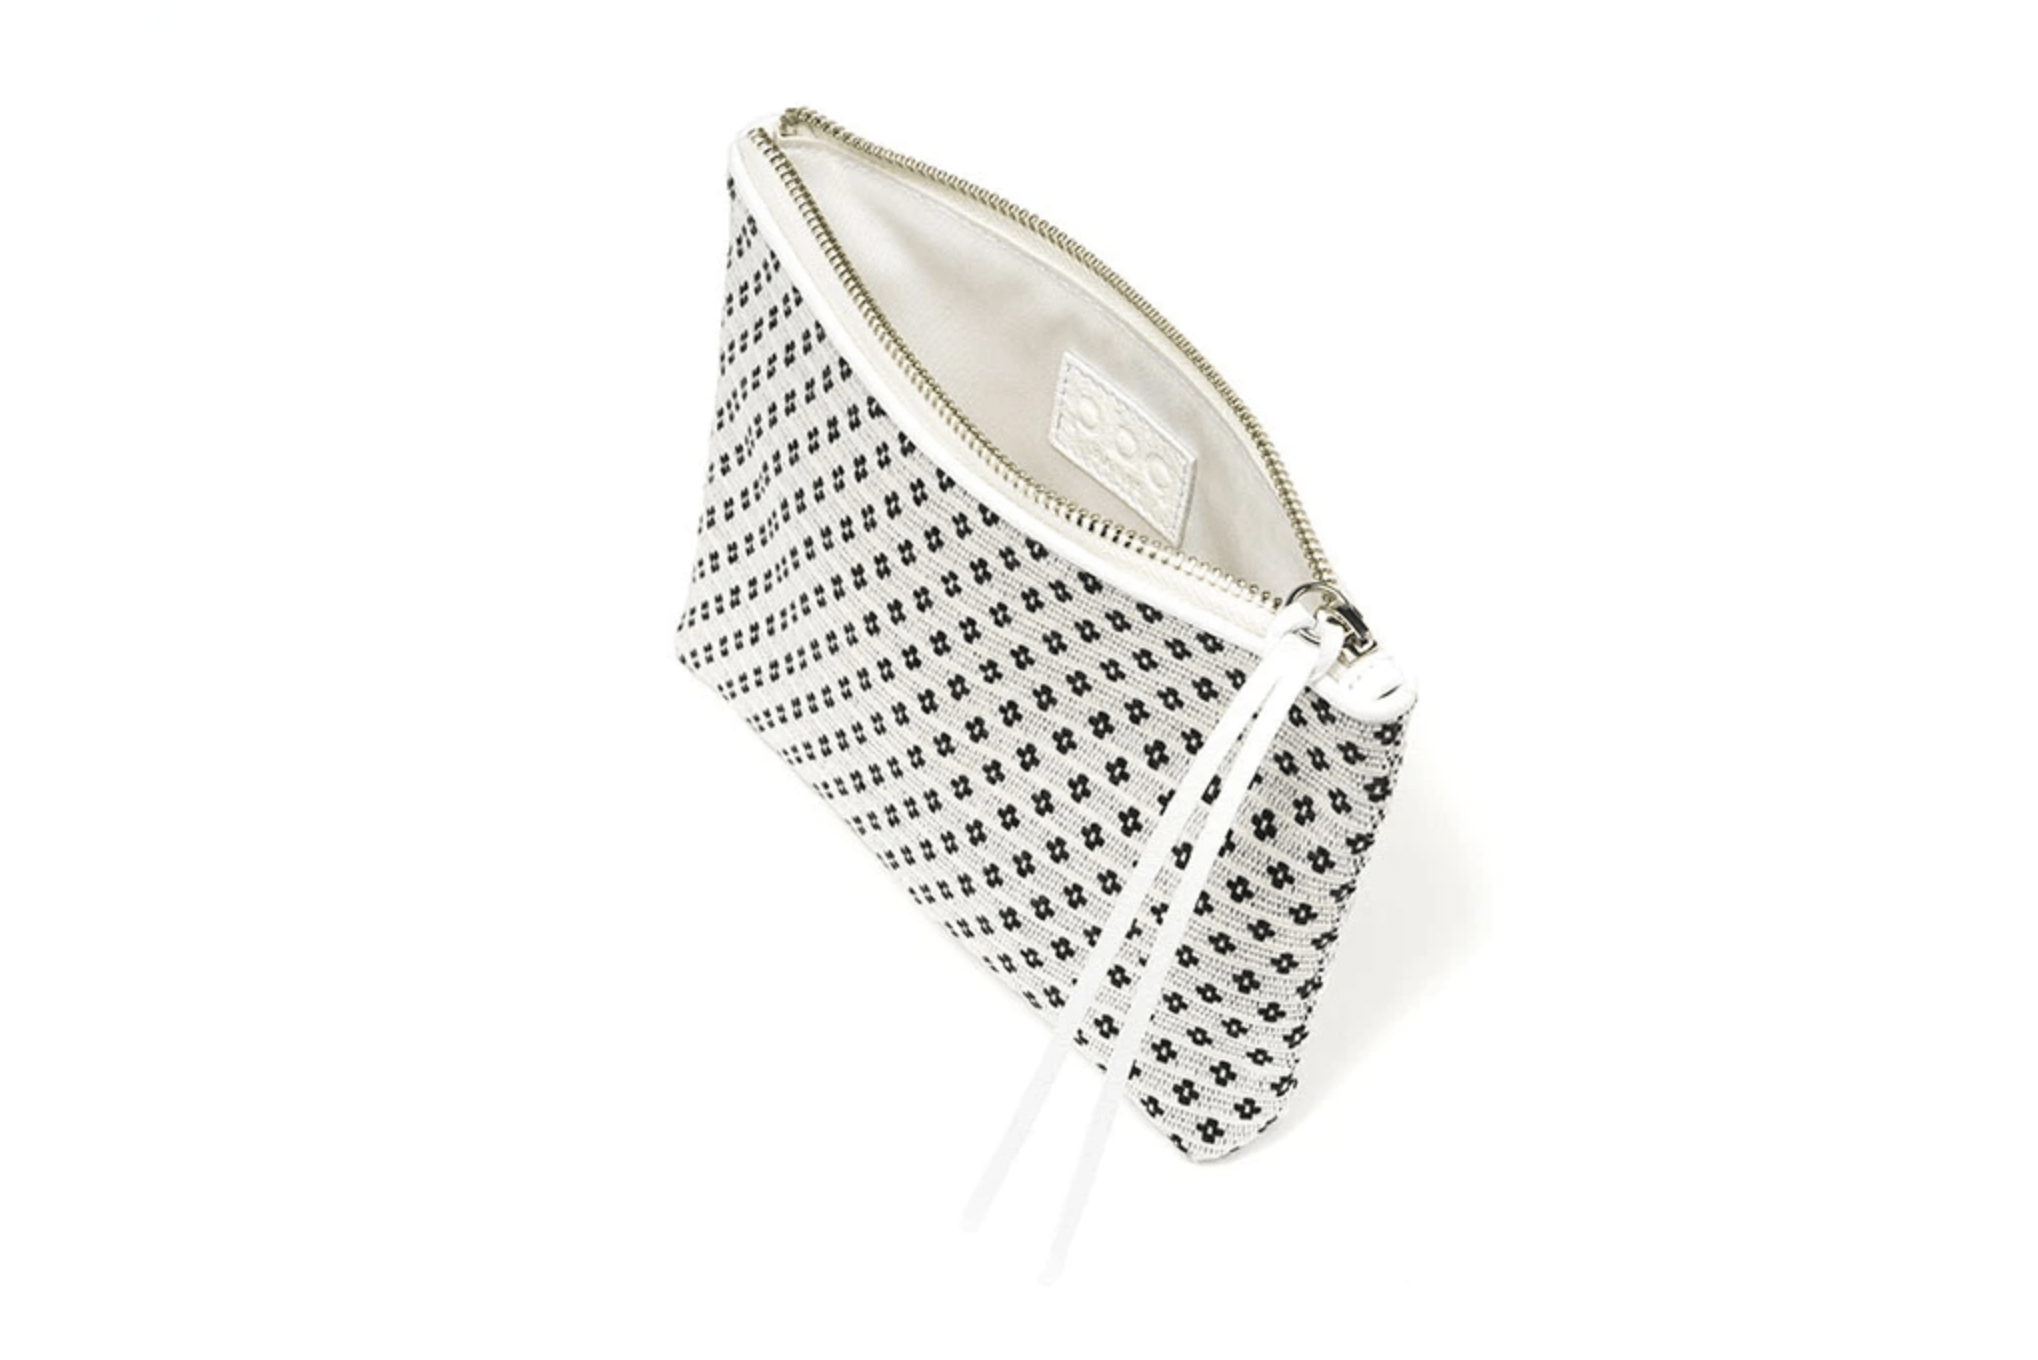 PBG PARIS Bags of Hope zipper pouch, white/black